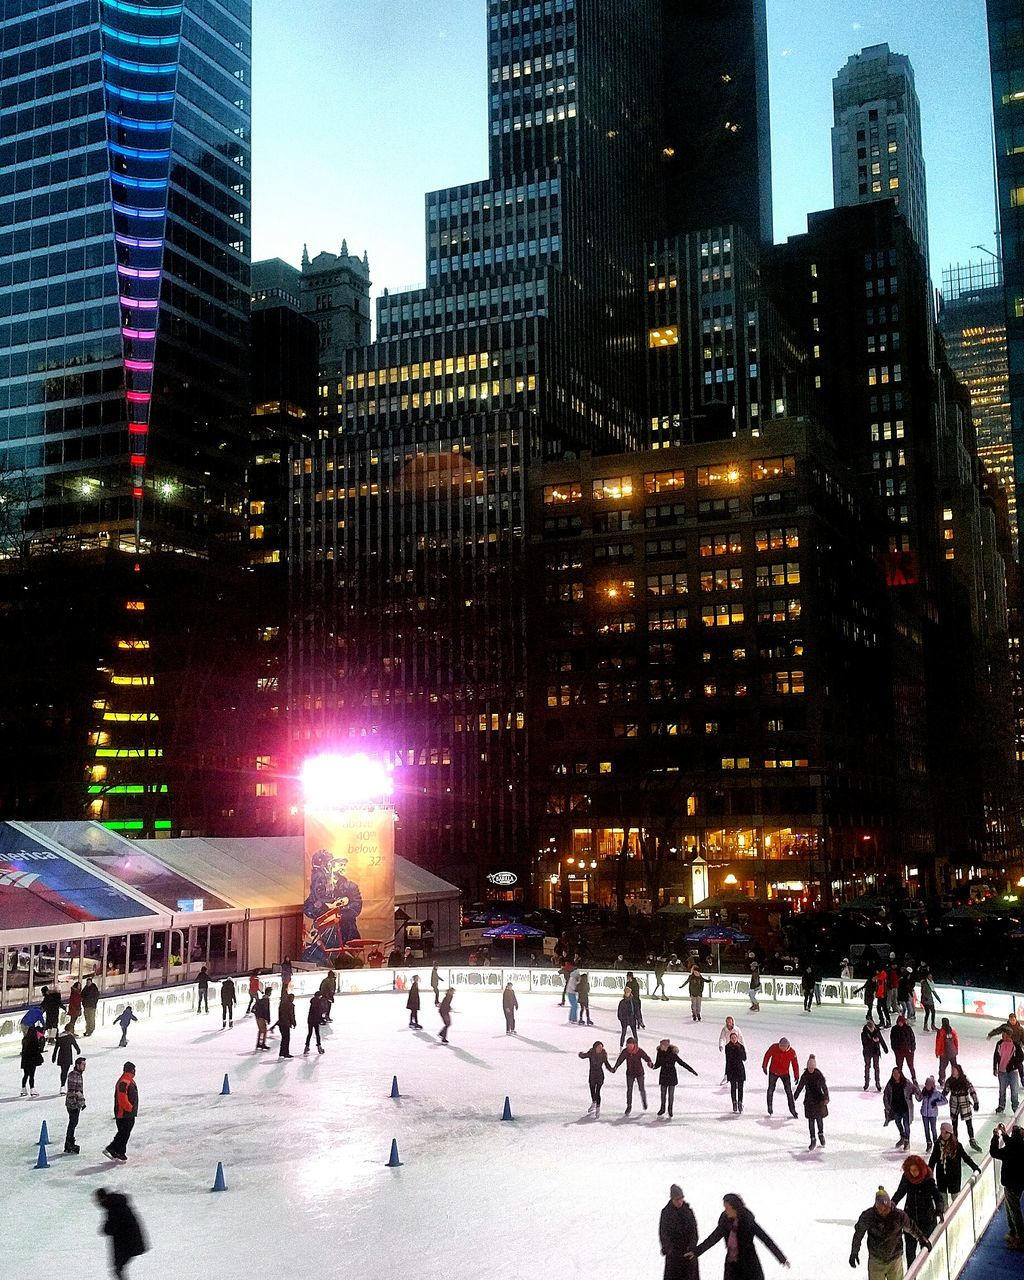 large group of people, architecture, building exterior, built structure, ice-skating, real people, city, ice rink, illuminated, city life, skyscraper, leisure activity, winter sport, skating, lifestyles, outdoors, travel destinations, men, modern, winter, cold temperature, women, night, crowd, cityscape, people